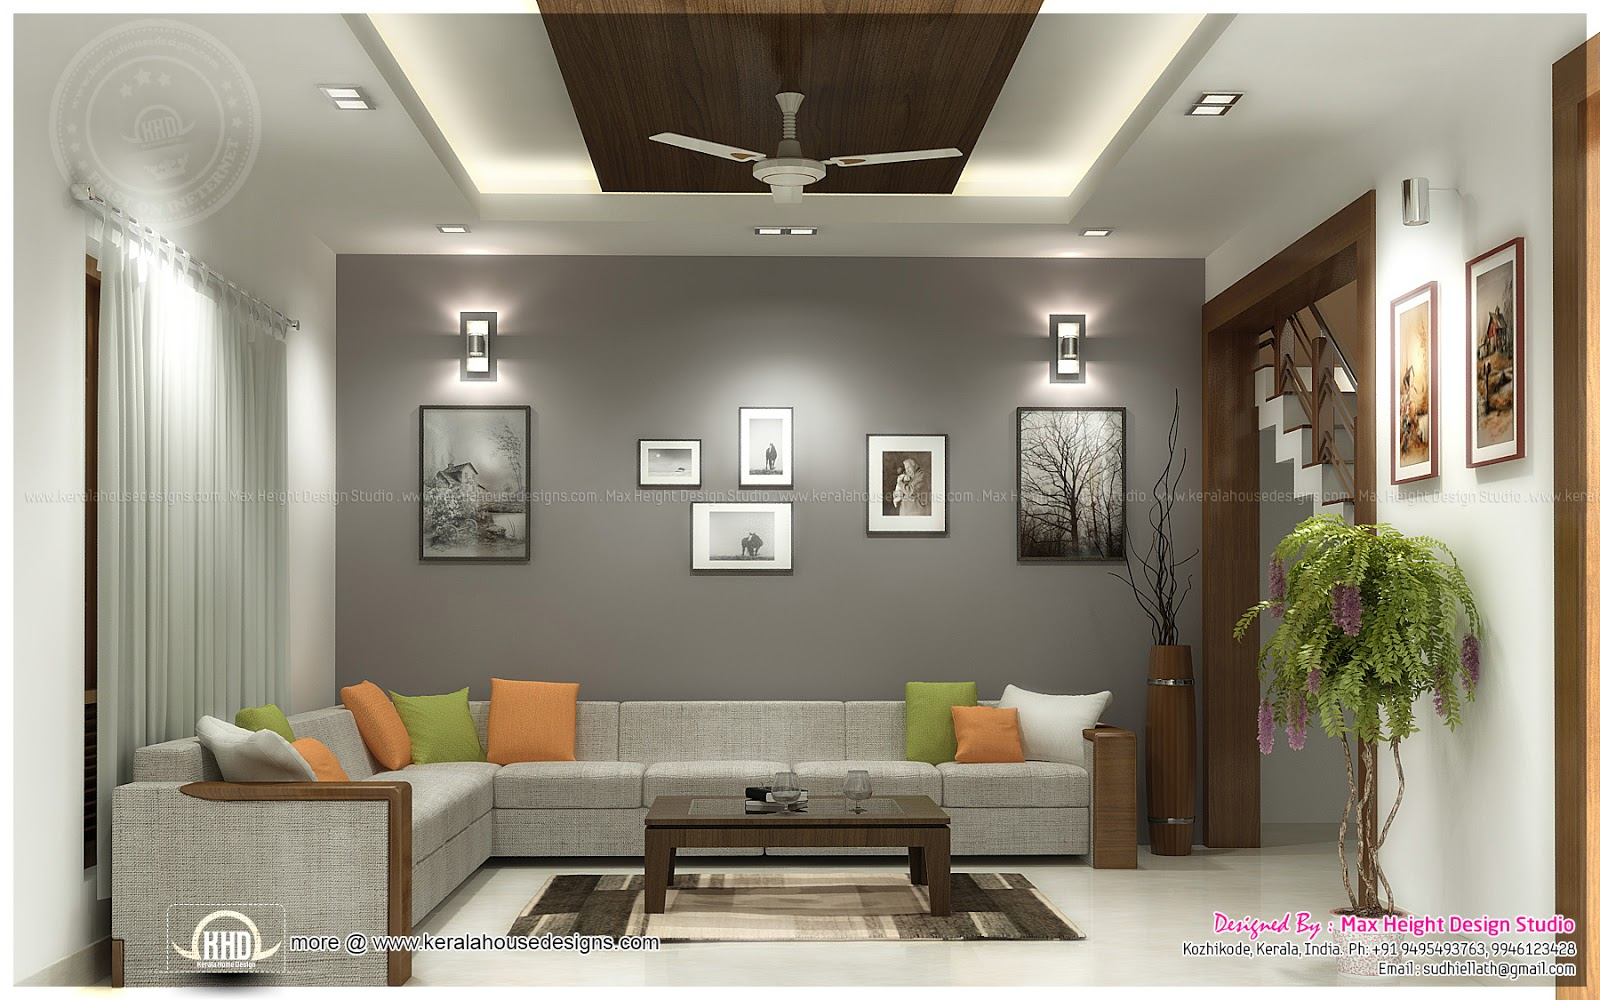 Beautiful interior ideas for home kerala home design and for Interior designs photos for home